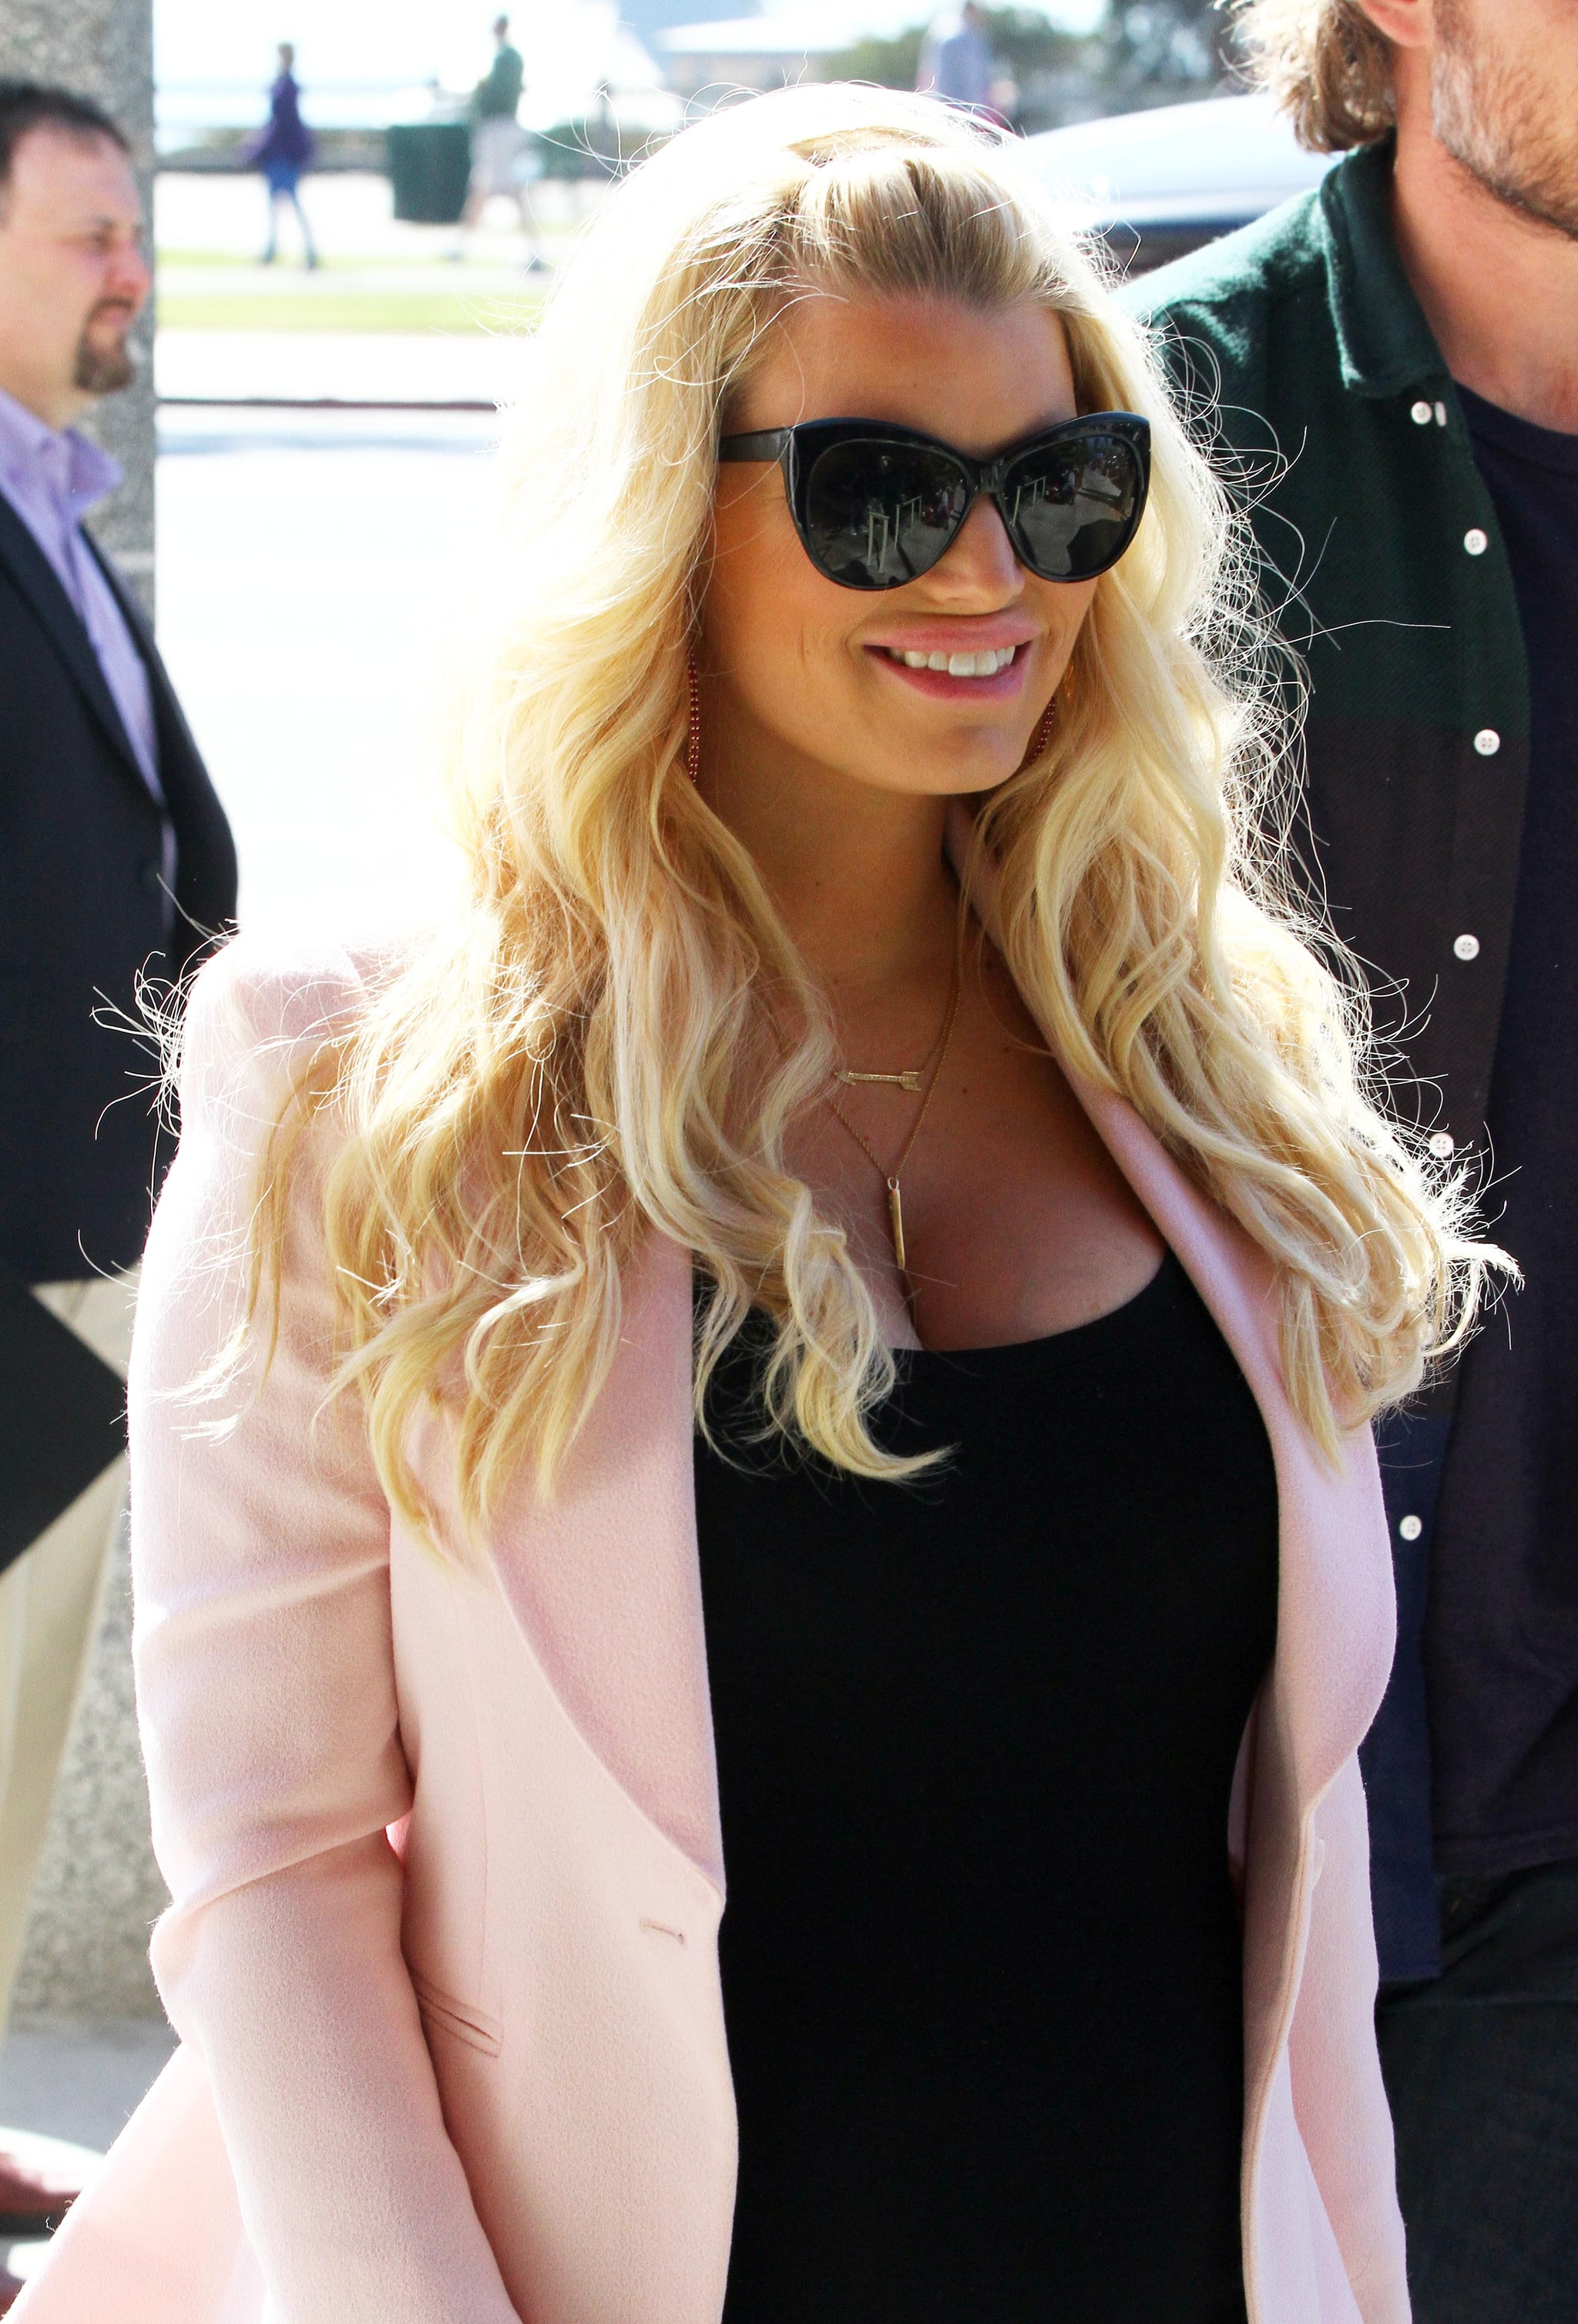 Jessica Simpson flashed a smile on her way to lunch.